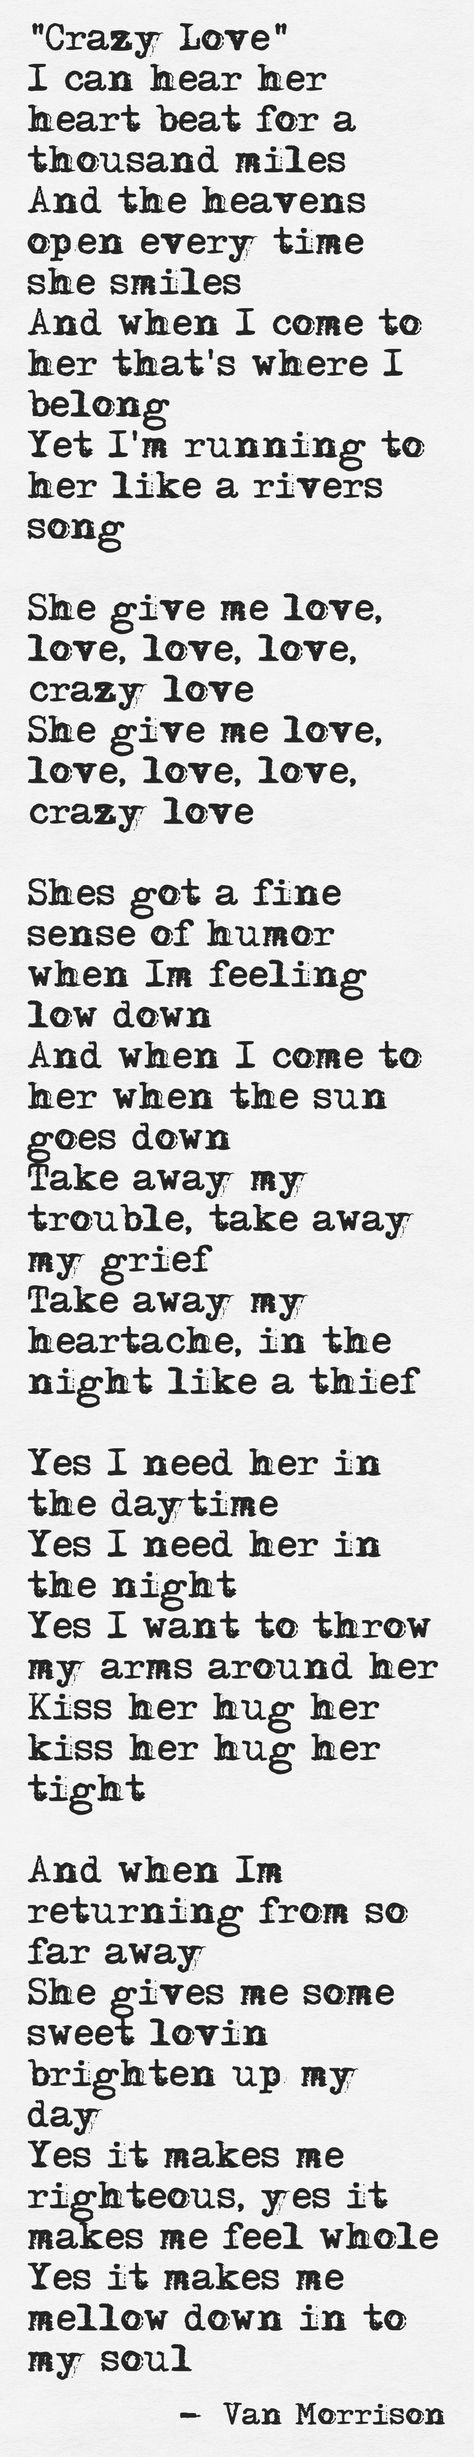 Falling Crazy In Love Quotes quotes Music love, Van